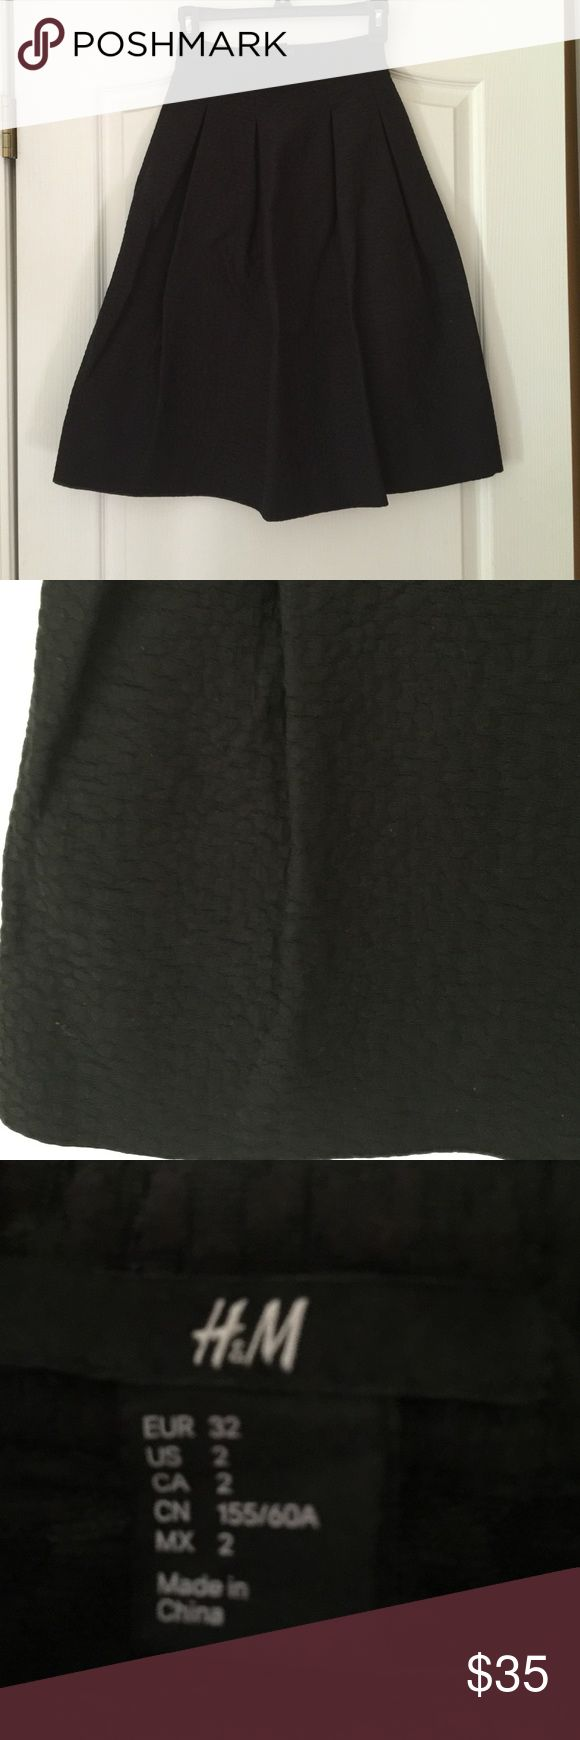 H&M black midi skirt. Size 2. H&M black midi skirt. Size 2. Very comfortable! Great condition! H&M Skirts Midi